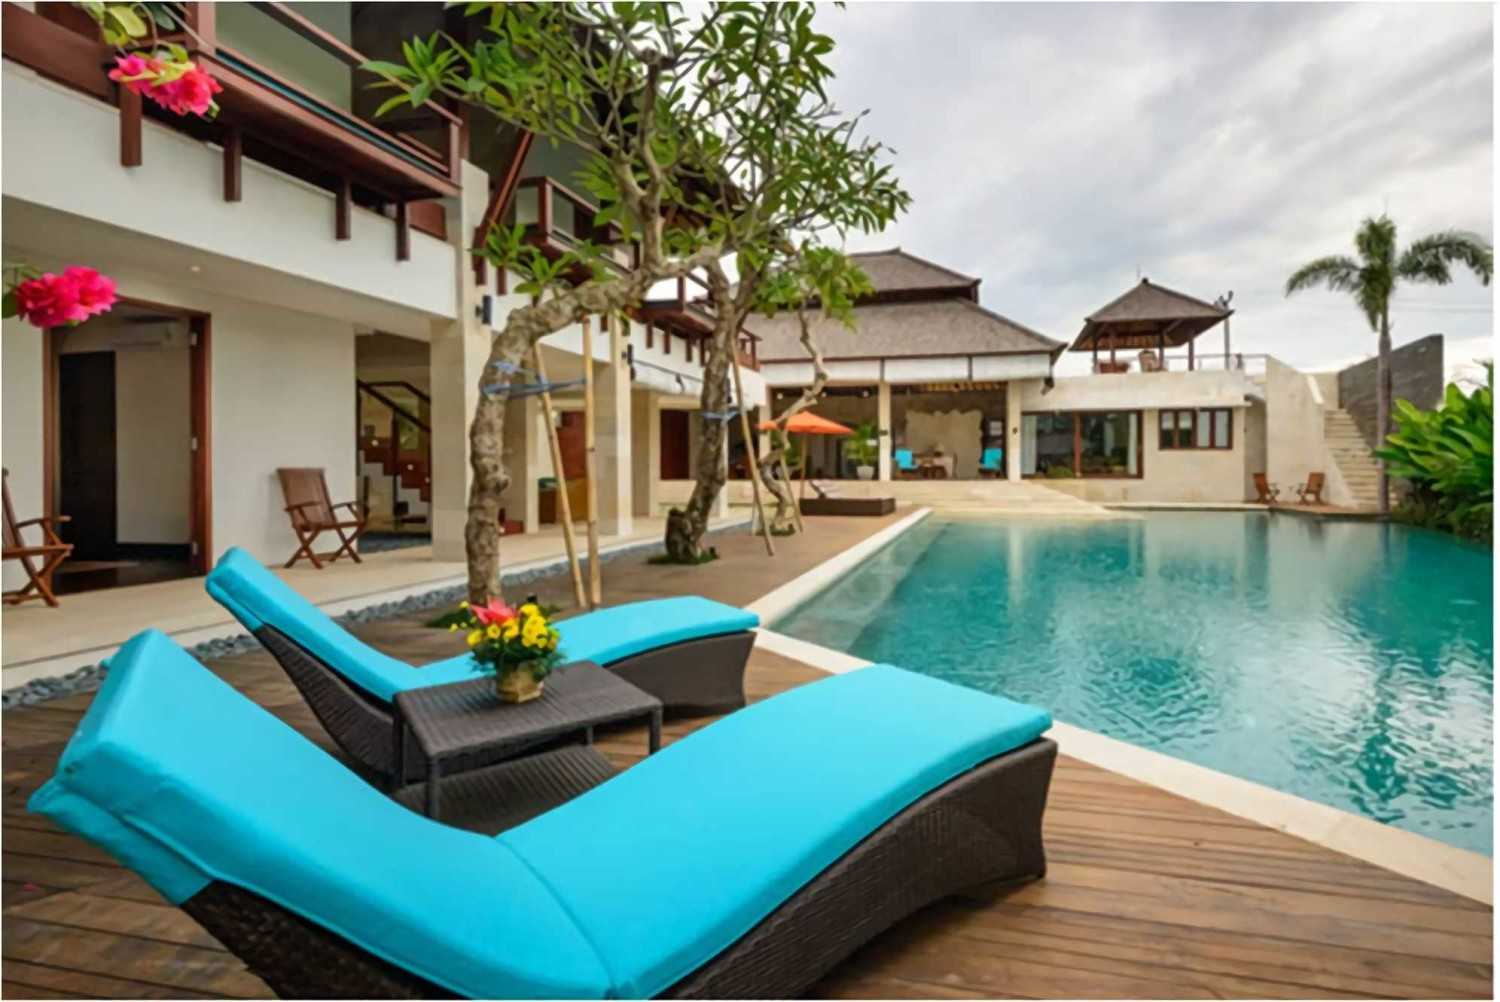 Jasa Design and Build HG ARCHITECTS & DESIGNERS ASSOCIATES di Bali